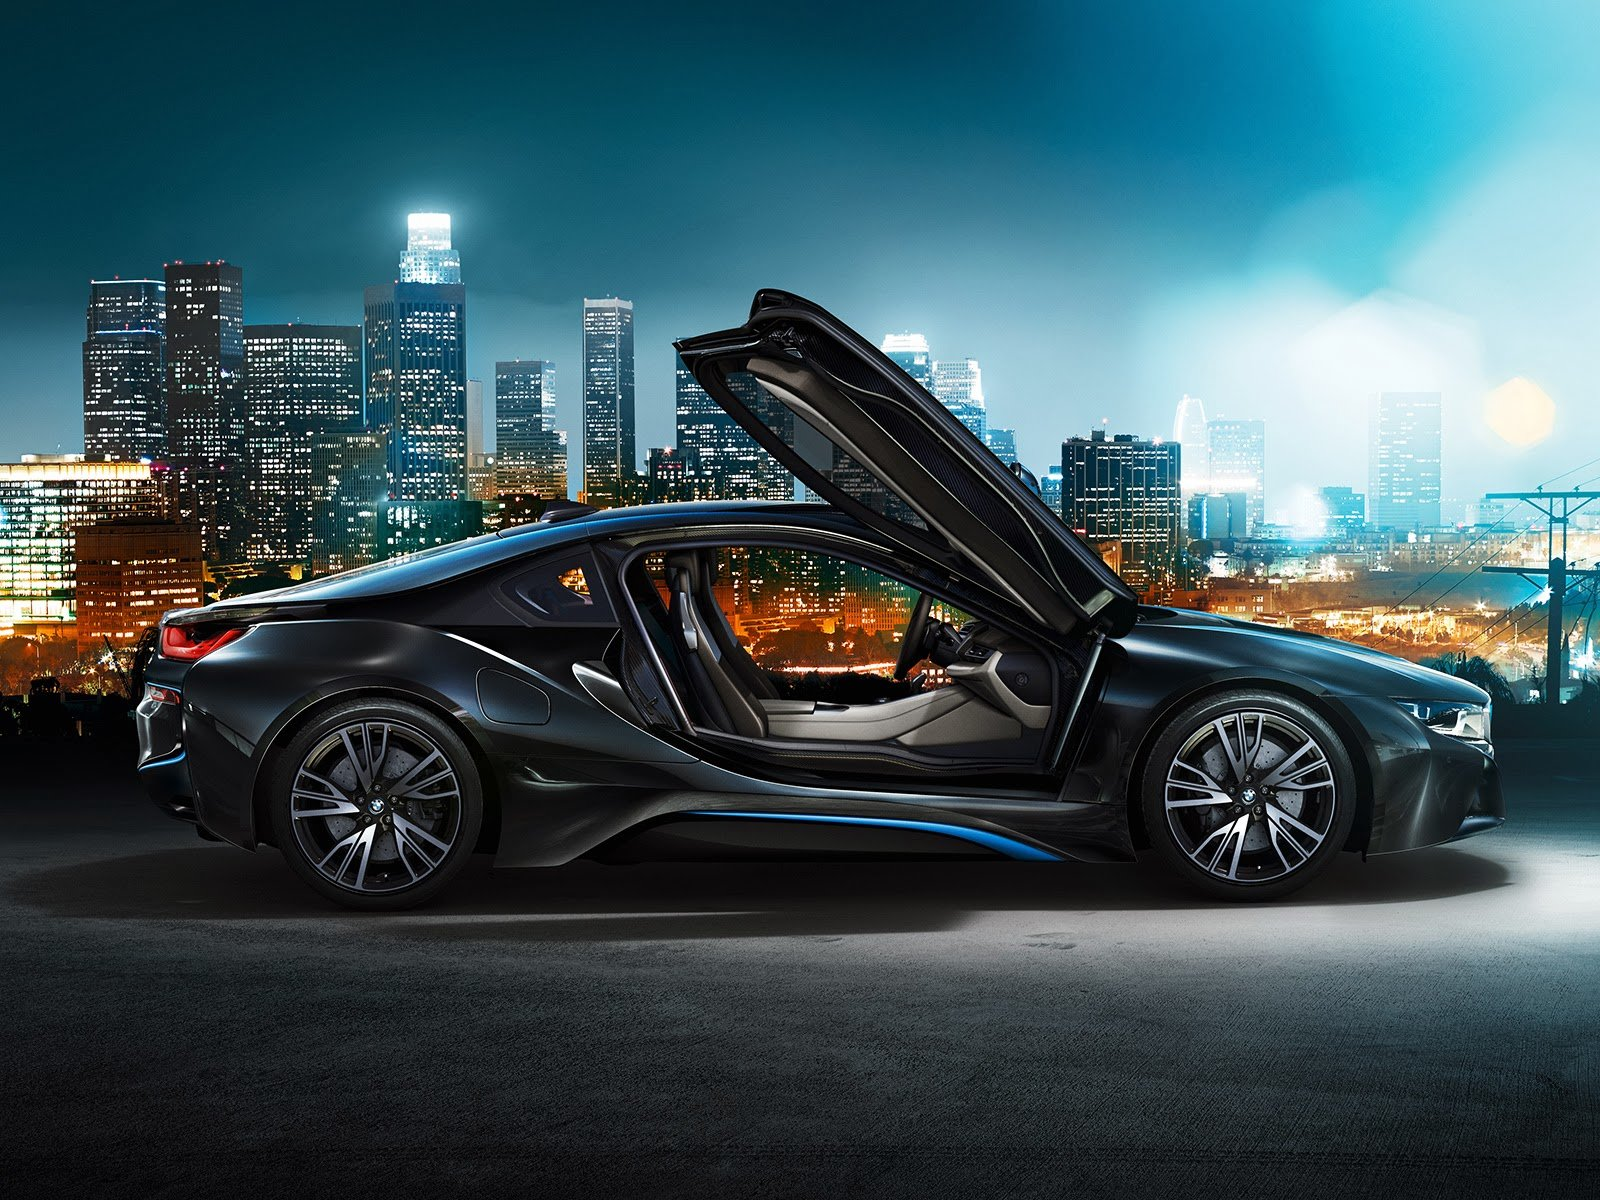 New Bmw I8 Wallpapers Hd Cars Wallpapers On This Month